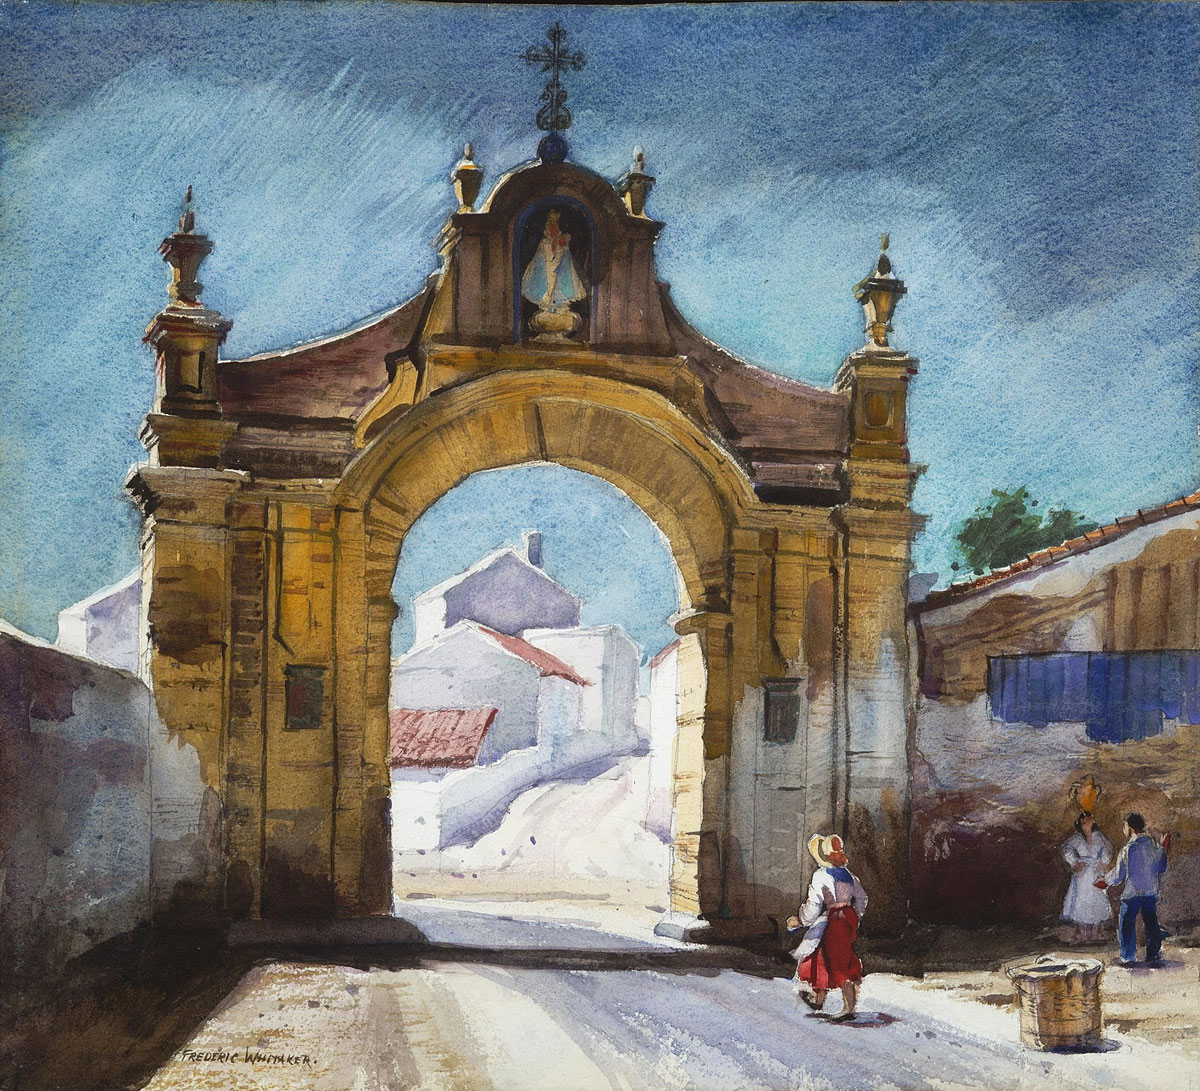 """Gateway to Antequerra"" 1967 © Frederic Whitaker 22x24.5 inches"